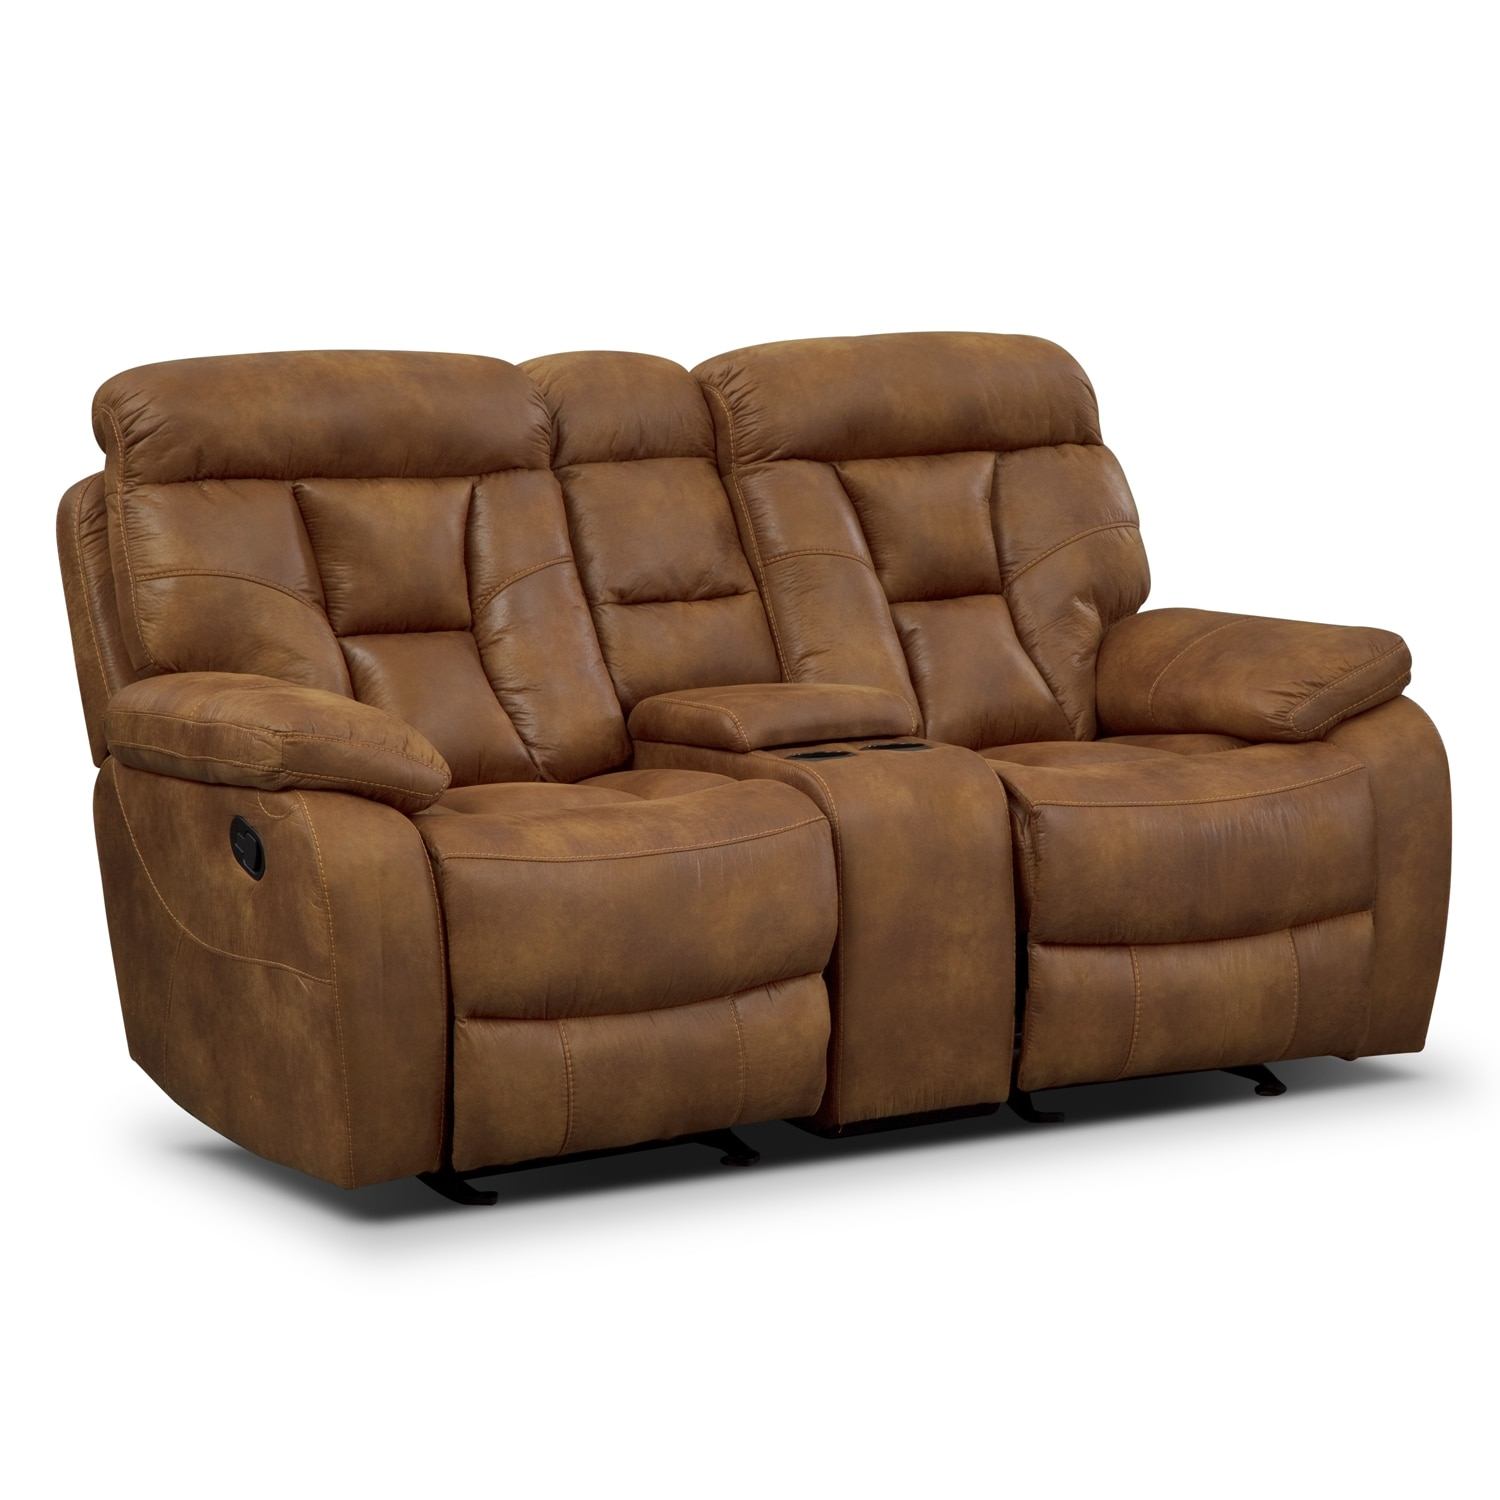 Dakota ii glider reclining loveseat with console value city furniture Reclining loveseat sale